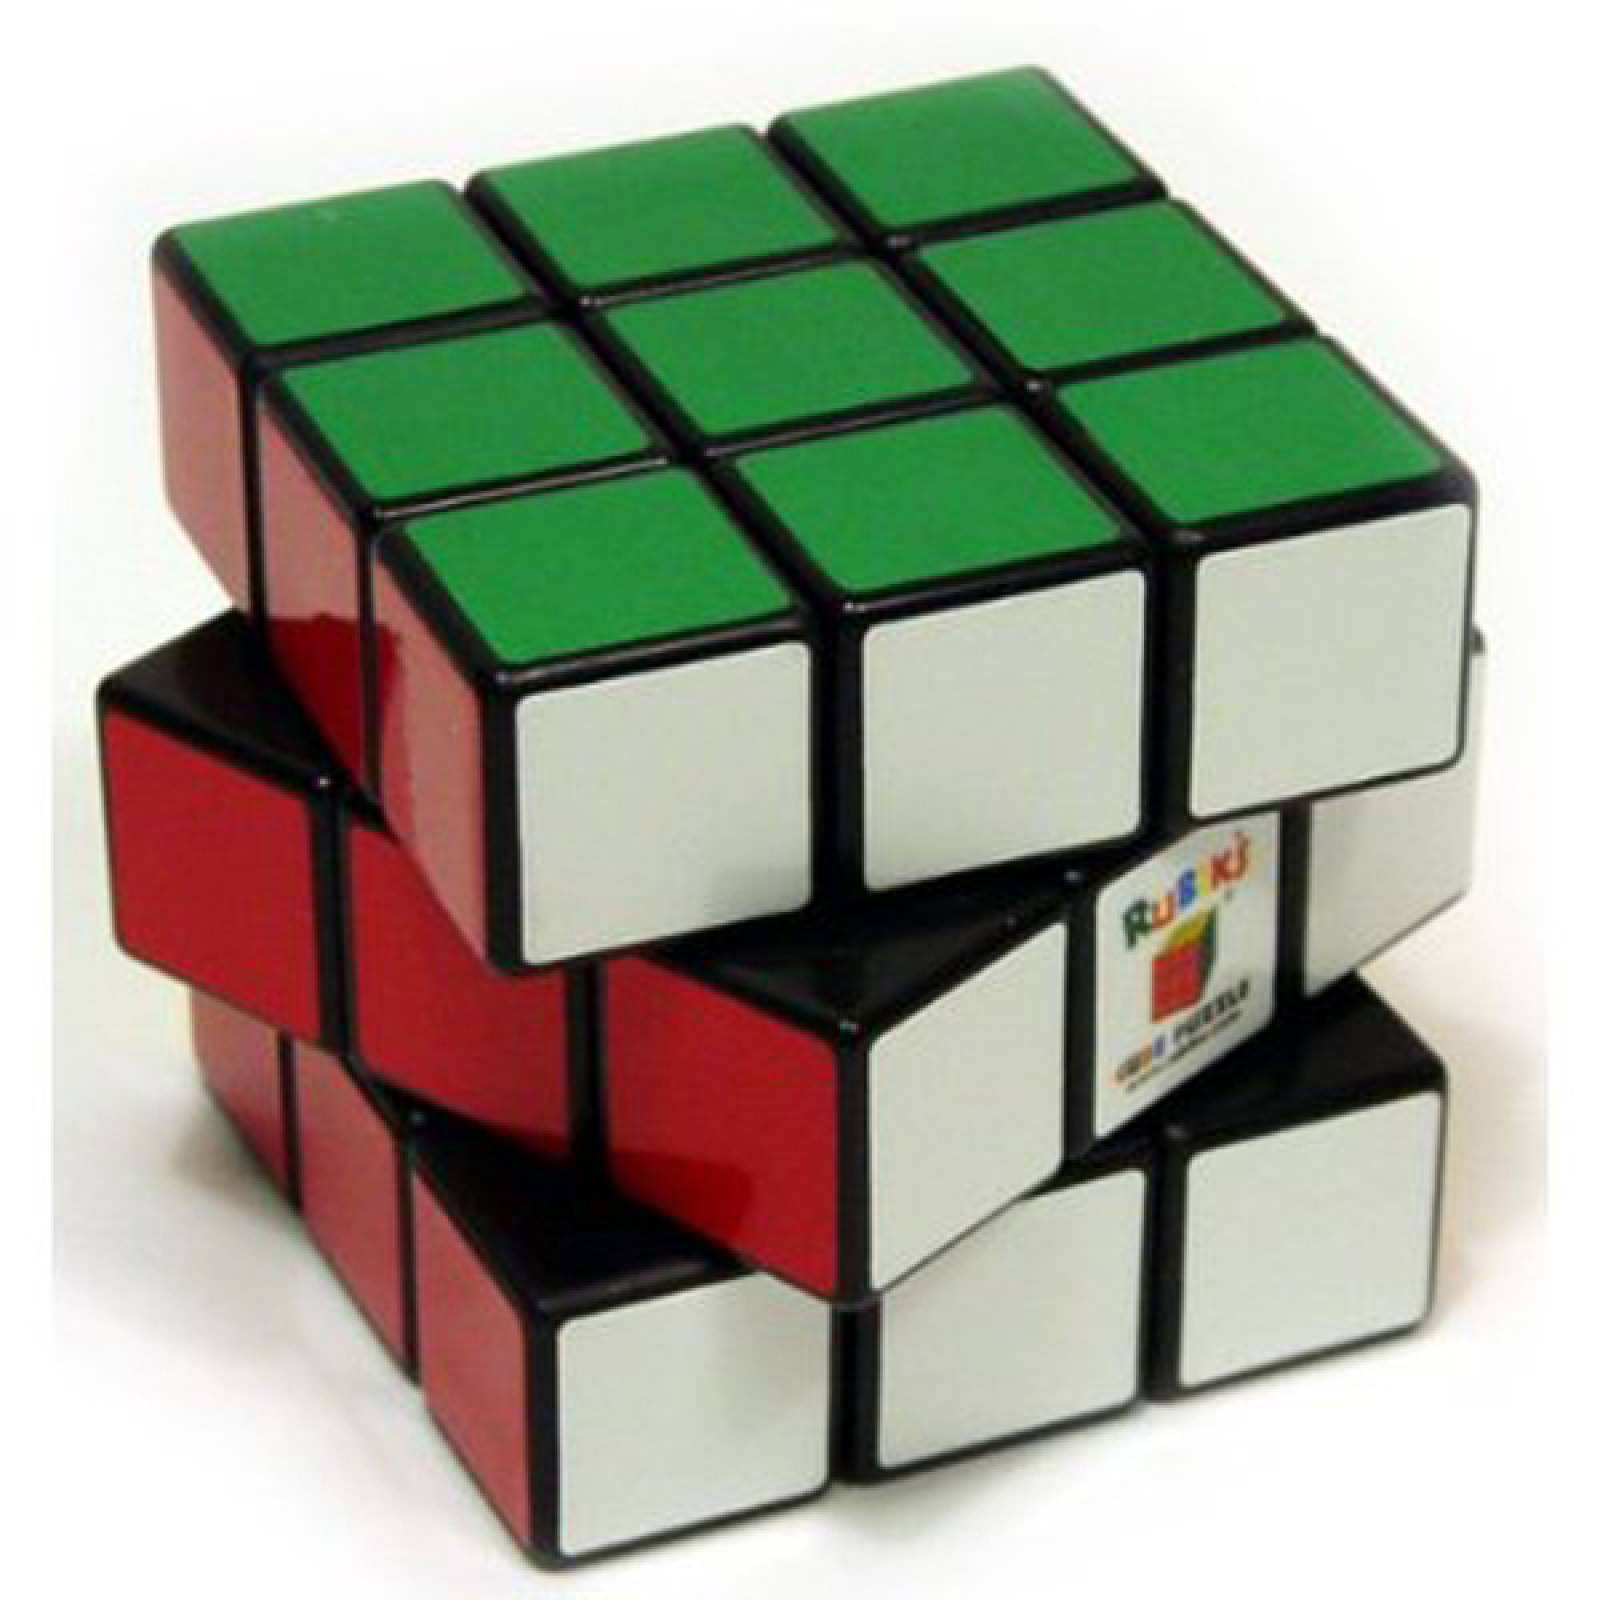 Rubiks Cube Classic Boxed Cube With Instructions 8+ thumbnails